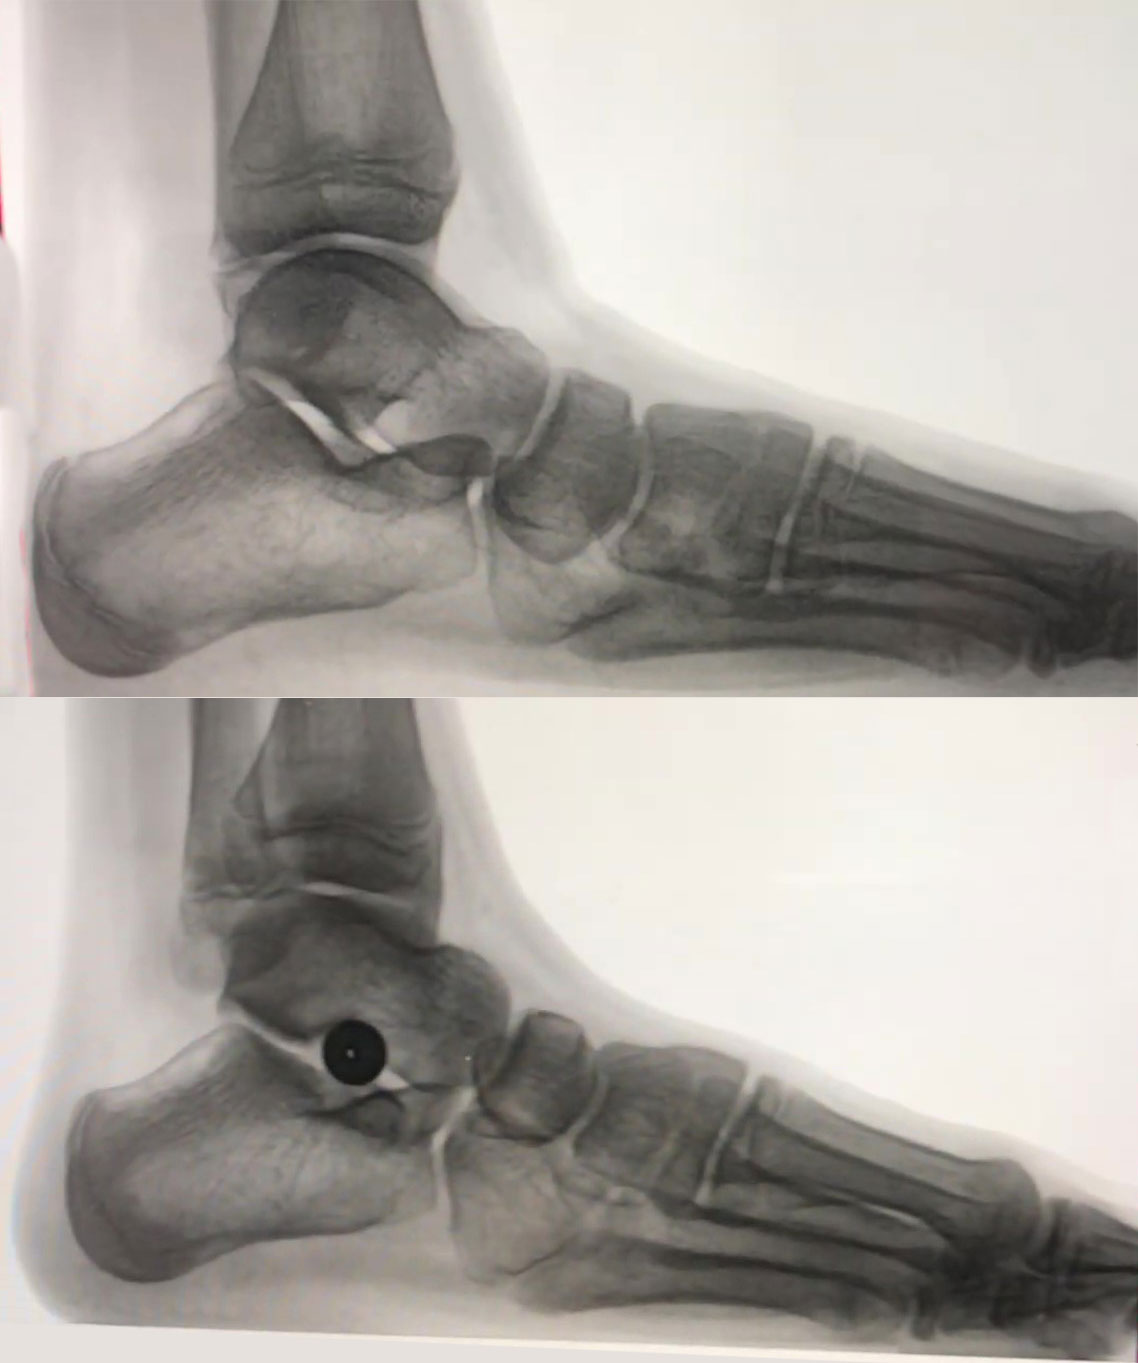 These radiographic images show lateral views of foot position before (top) and after (bottom) EOTTS.